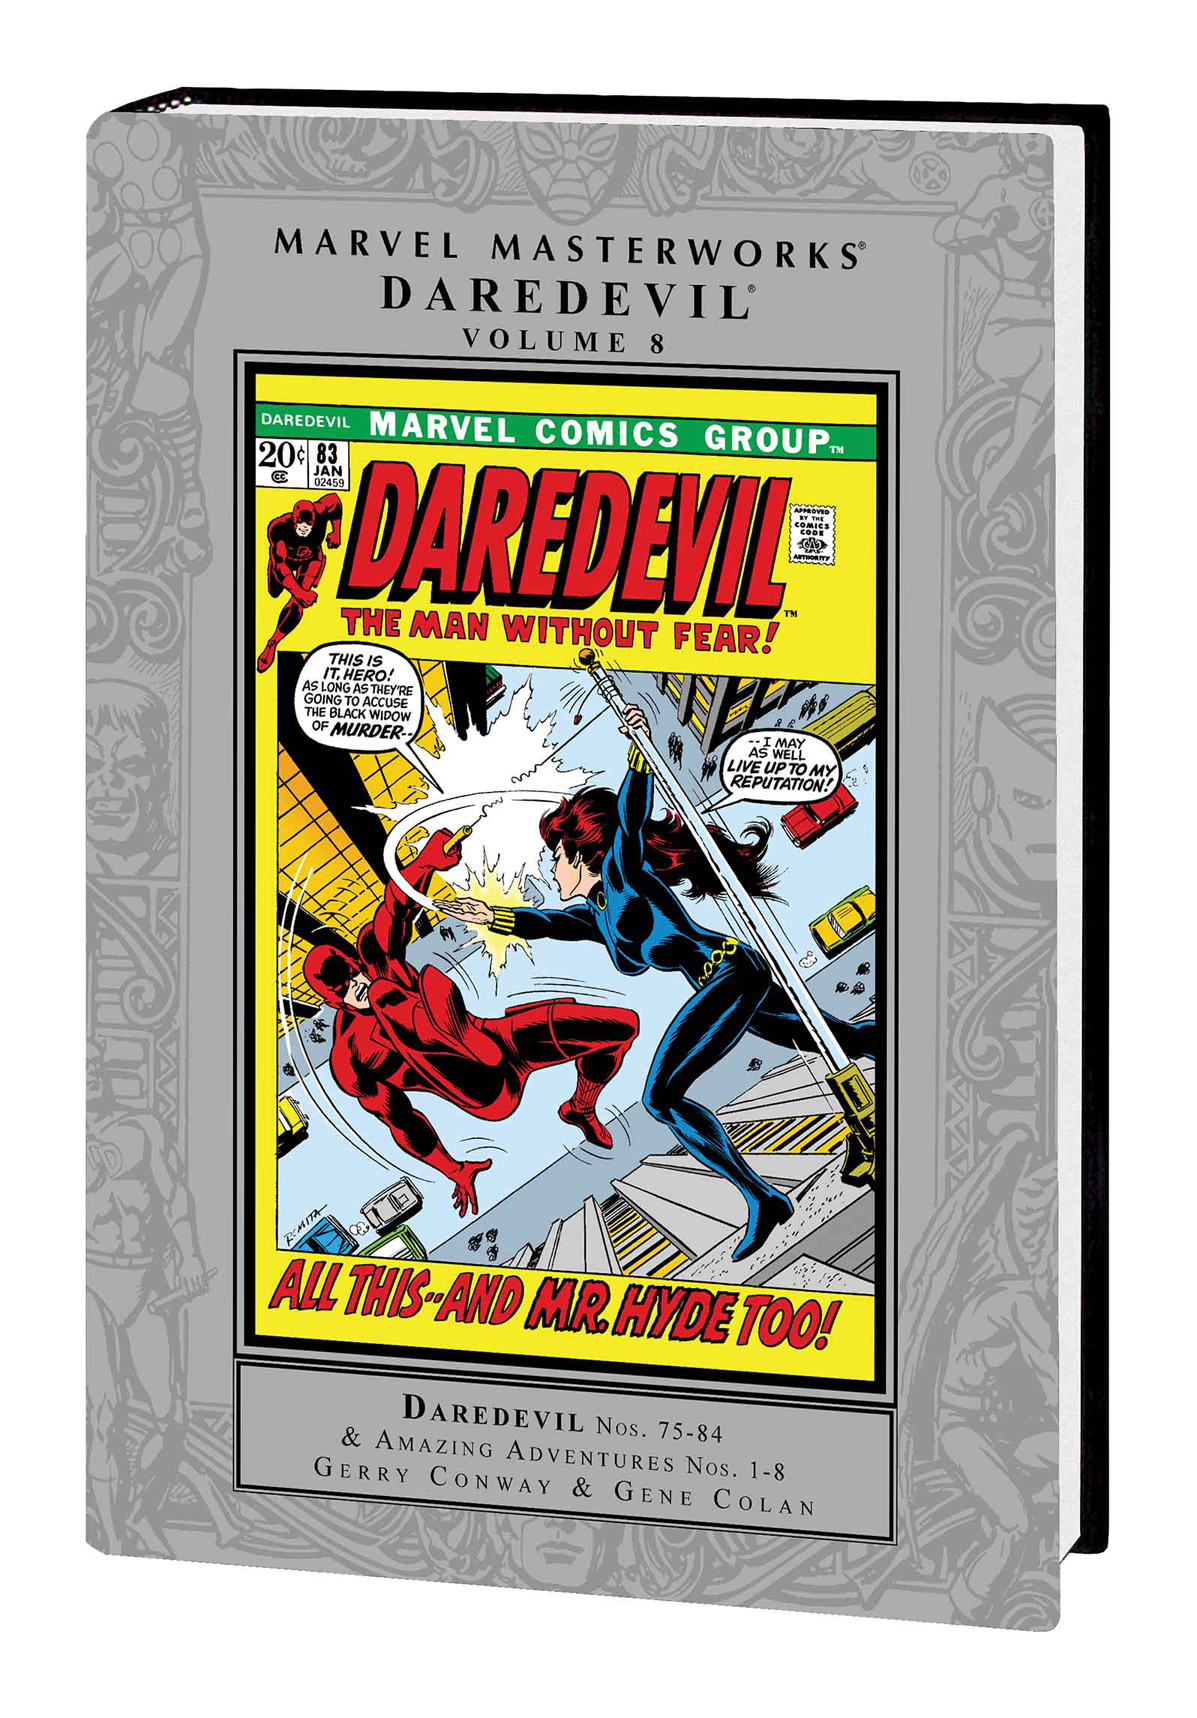 MMW DAREDEVIL HC VOL 08